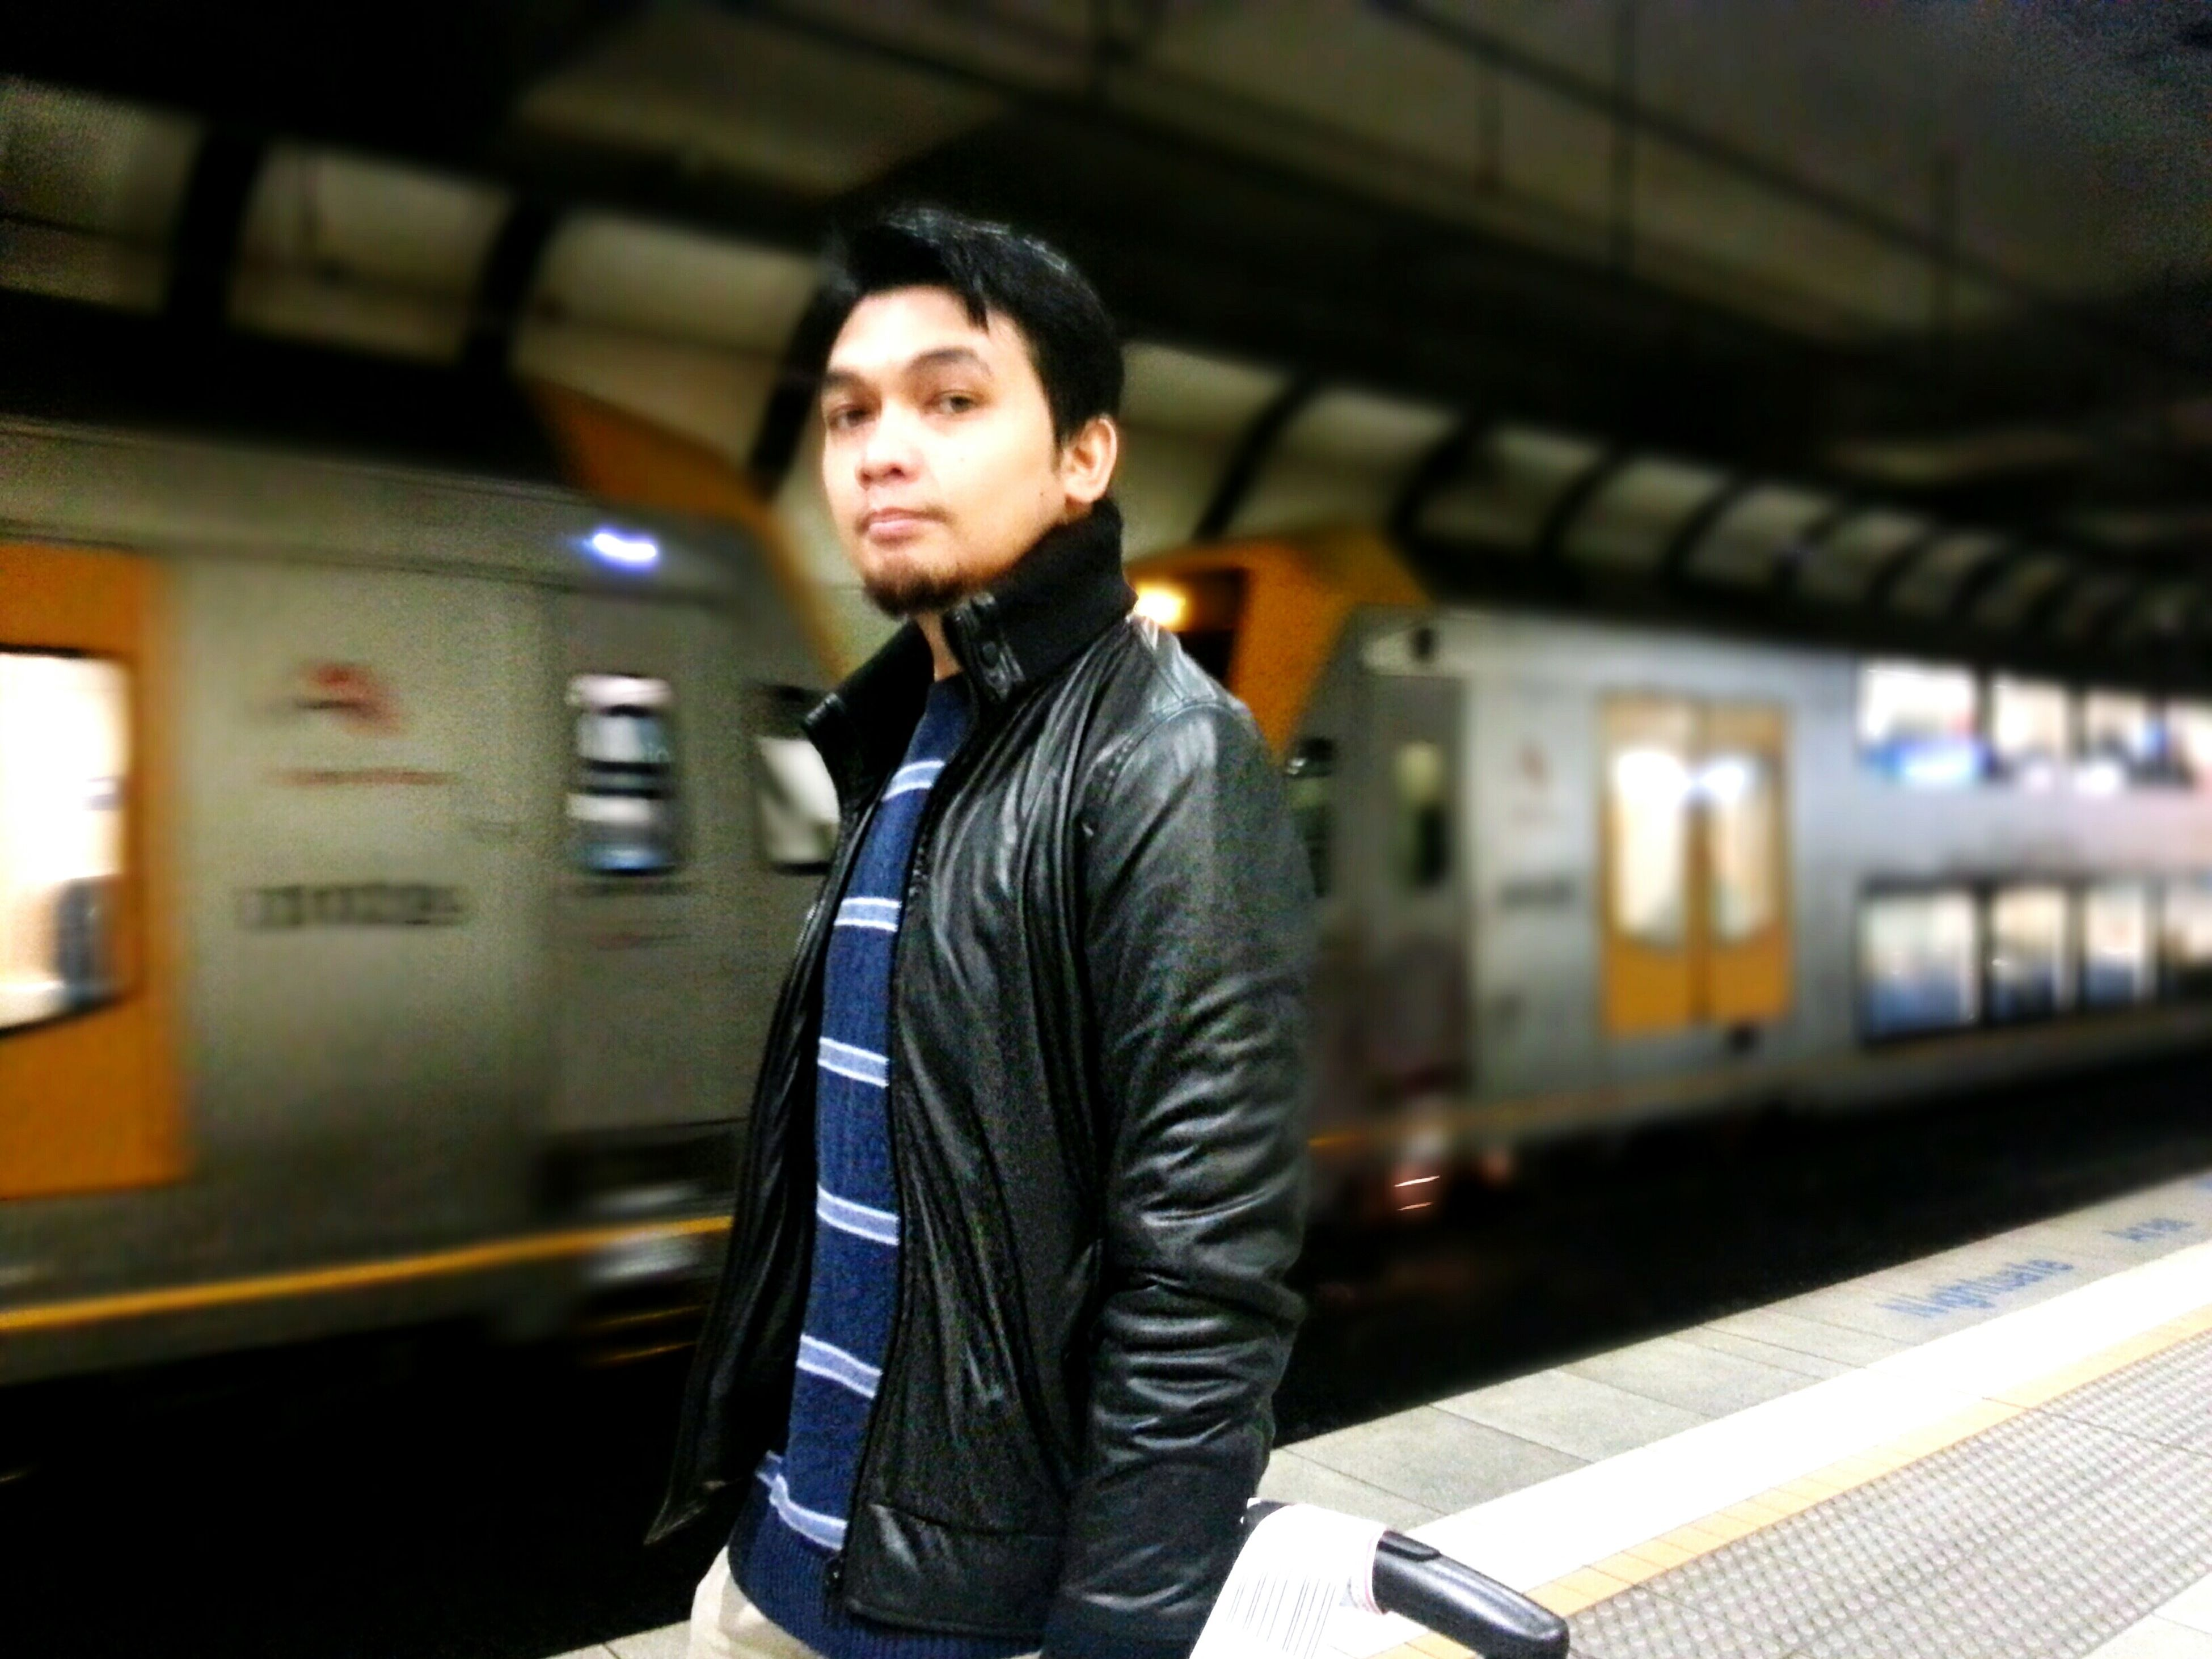 casual clothing, young adult, standing, lifestyles, three quarter length, person, front view, looking at camera, portrait, full length, leisure activity, young men, jacket, waist up, built structure, focus on foreground, transportation